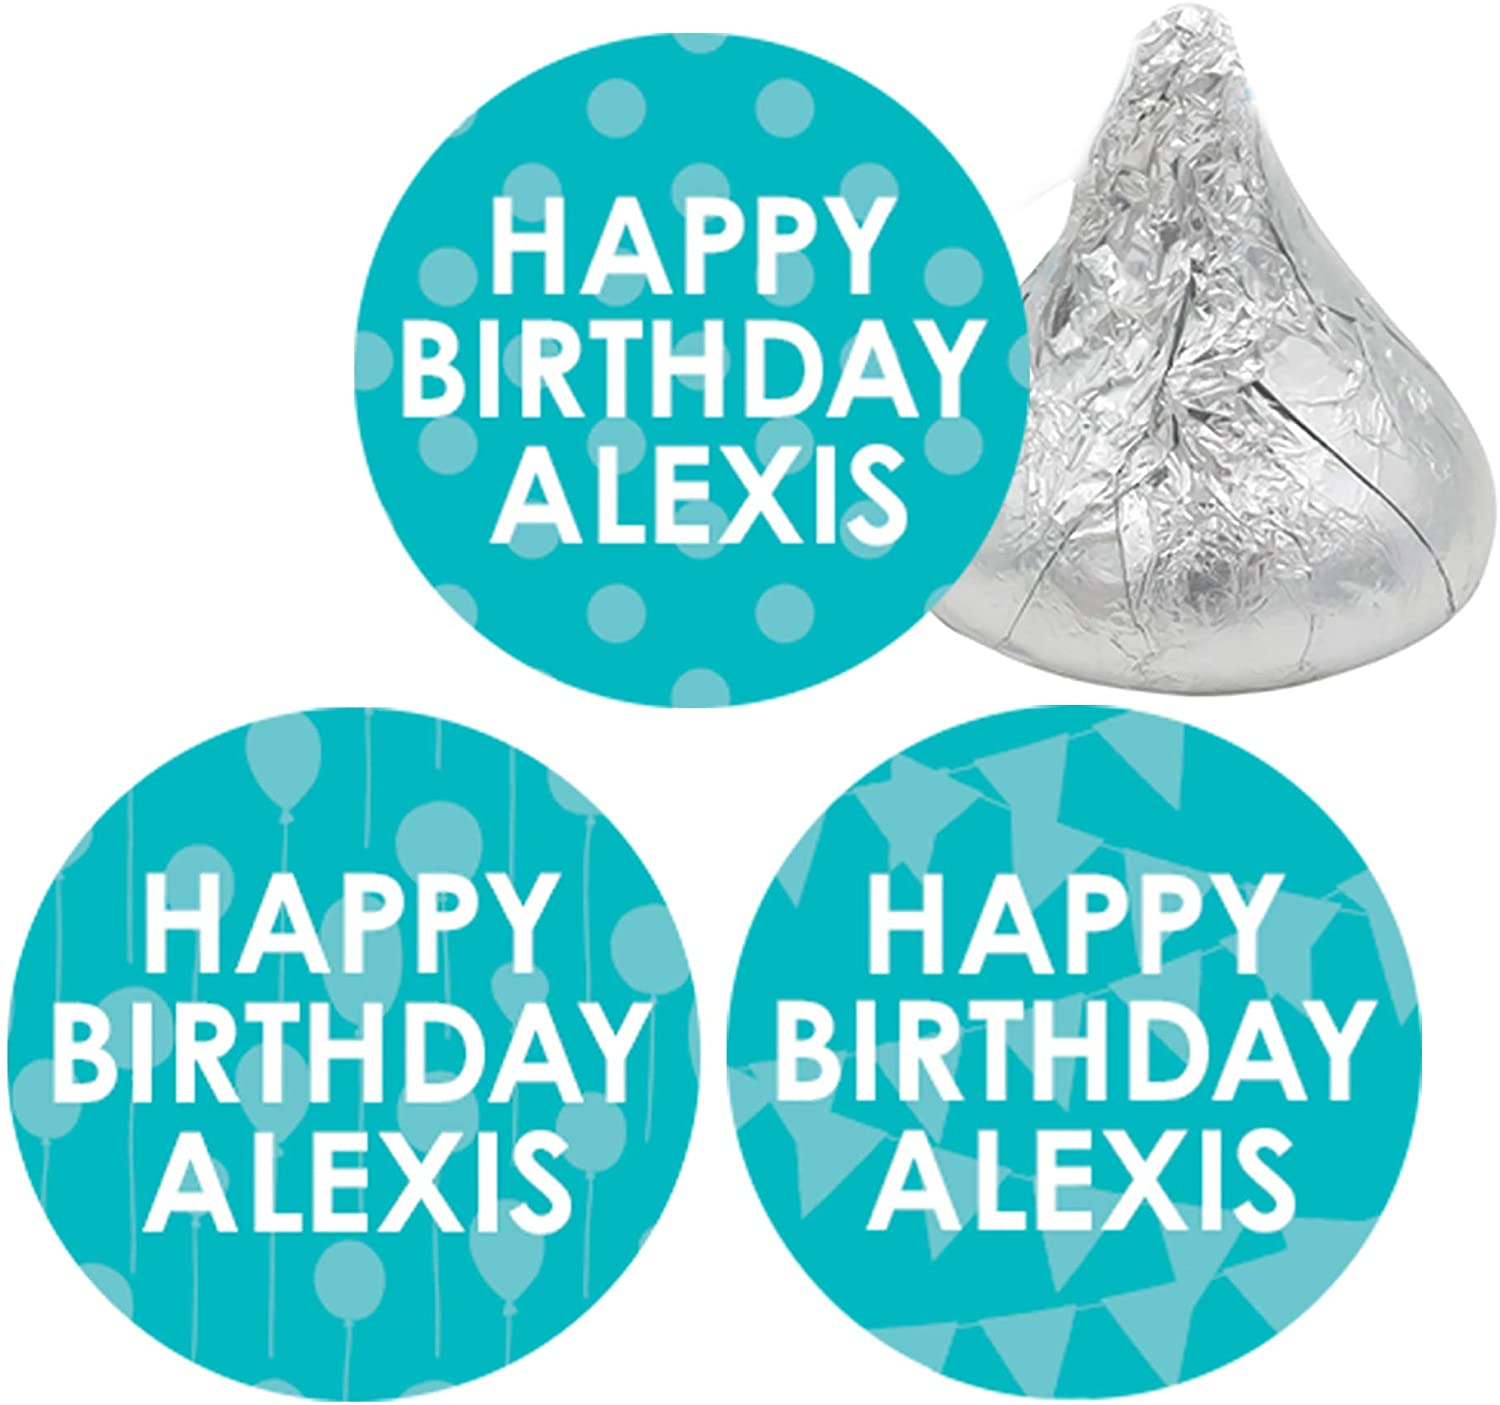 Personalized Happy Birthday Party Favor Stickers with Name - 180 Labels (Teal)